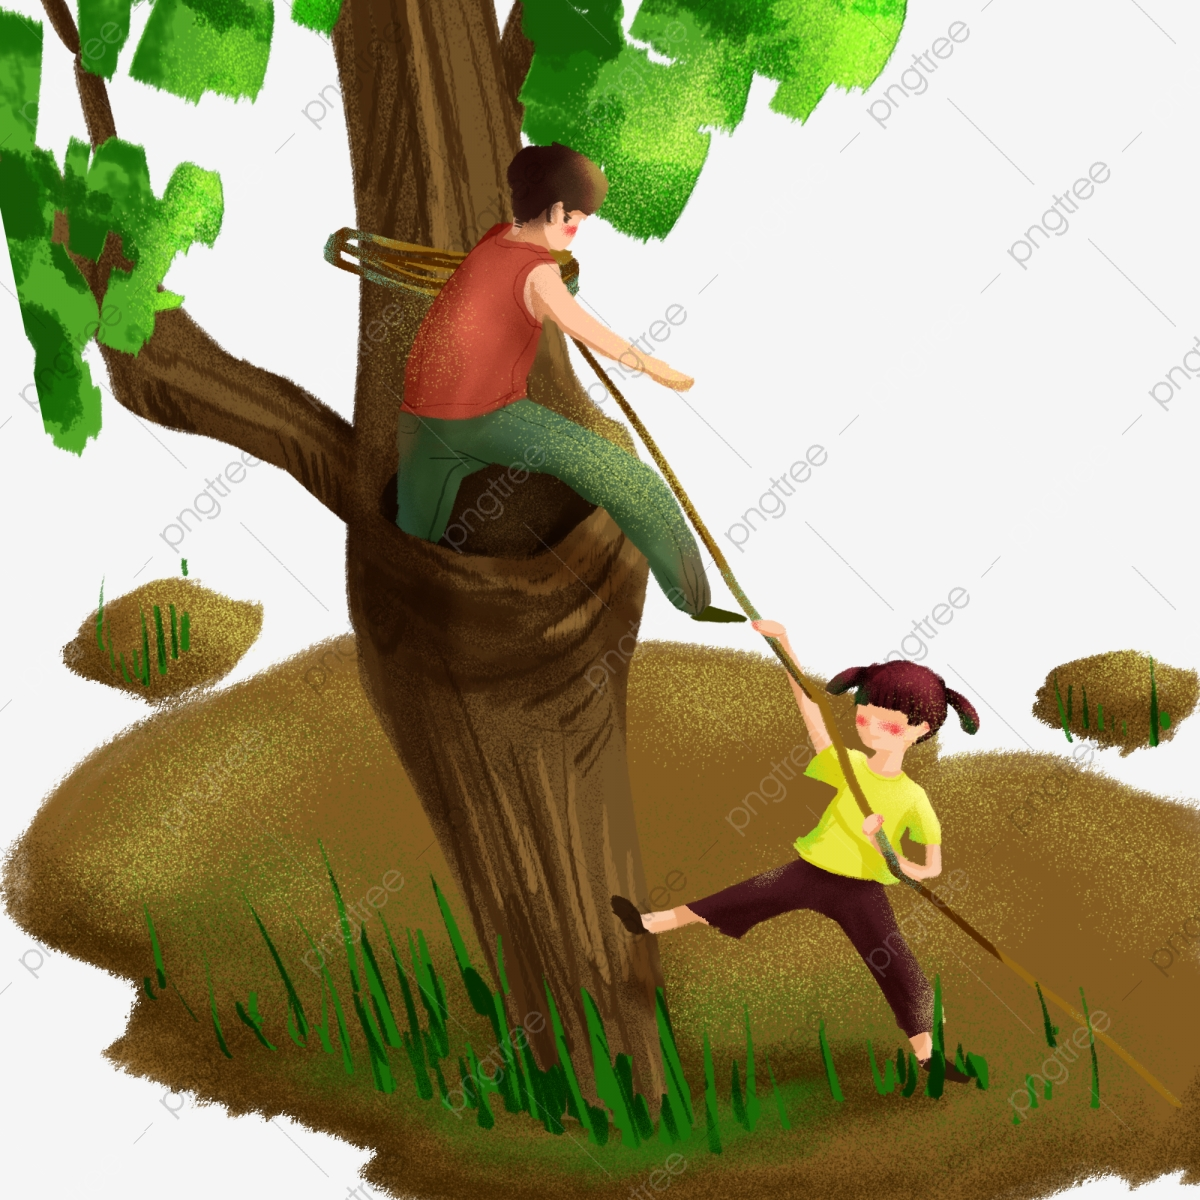 Summer Climbing Tree To Enjoy The Cool Children S Image Elements Painted Colored Cartoon Png Transparent Clipart Image And Psd File For Free Download Little boy climbing up a tree. https pngtree com freepng summer climbing tree to enjoy the cool children s image elements 4391027 html